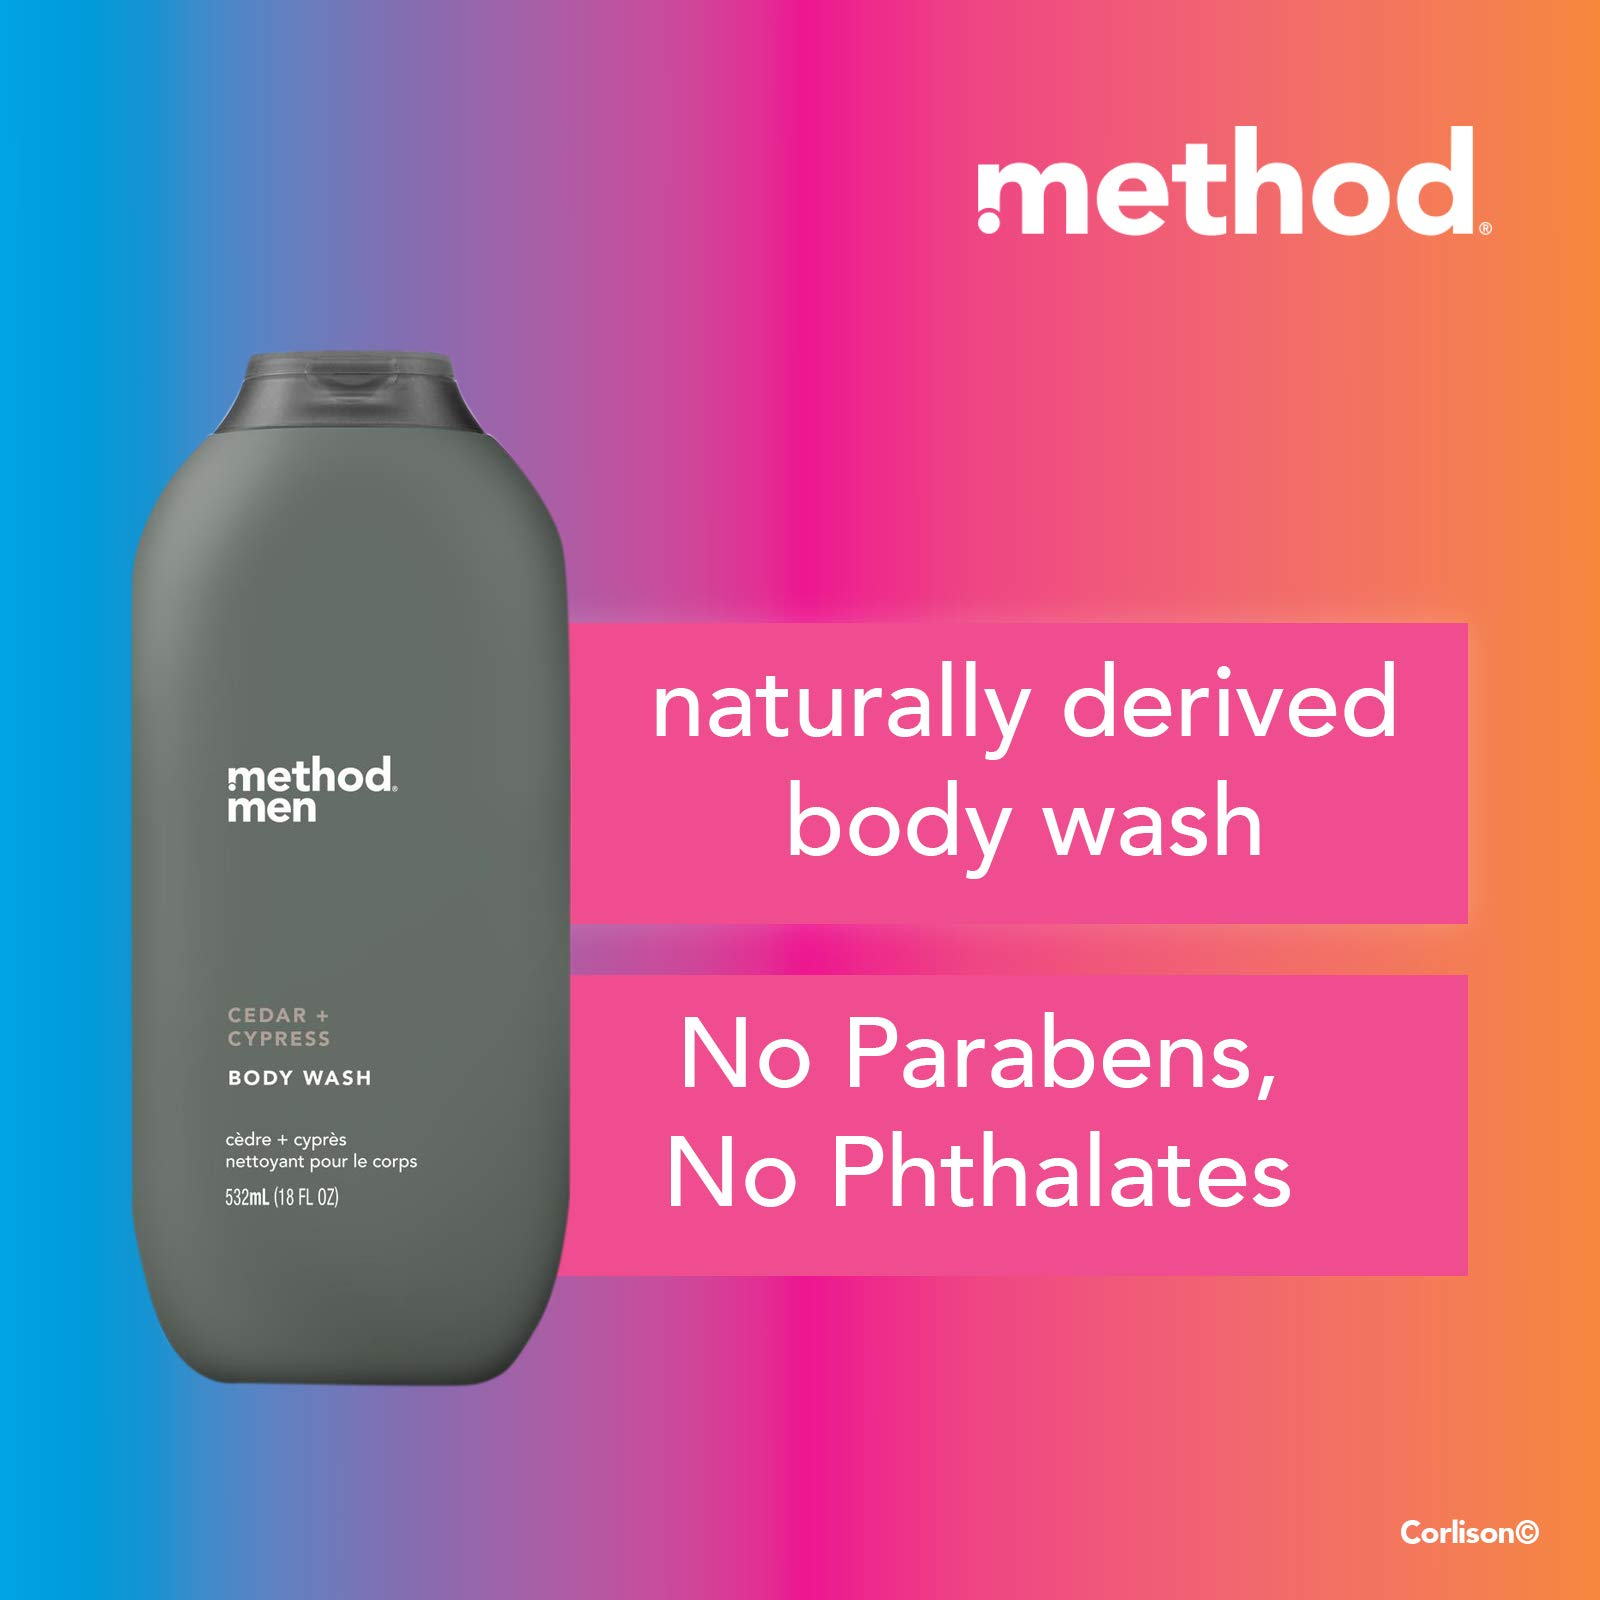 Method Men, Cedar + Cypress Body Wash, 18oz, 18 Fl Oz